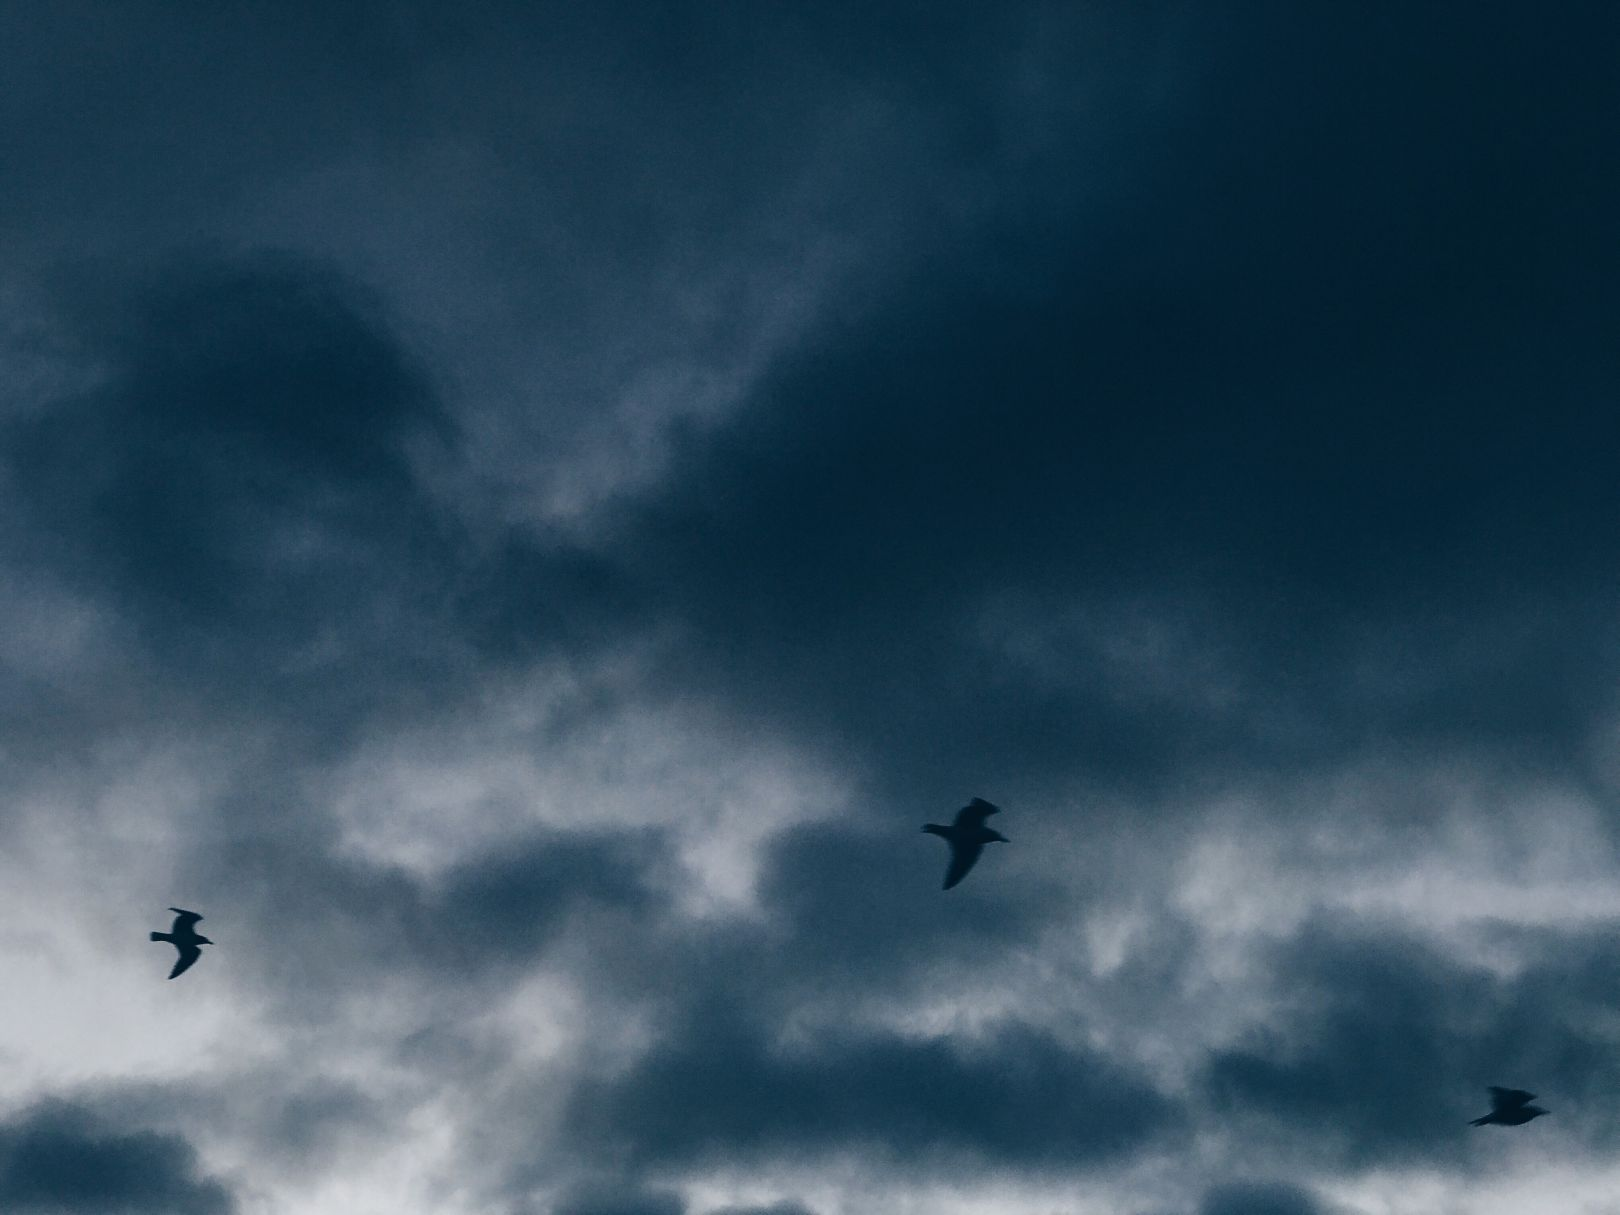 A photo depicting A few birds fly against a moody blue sky